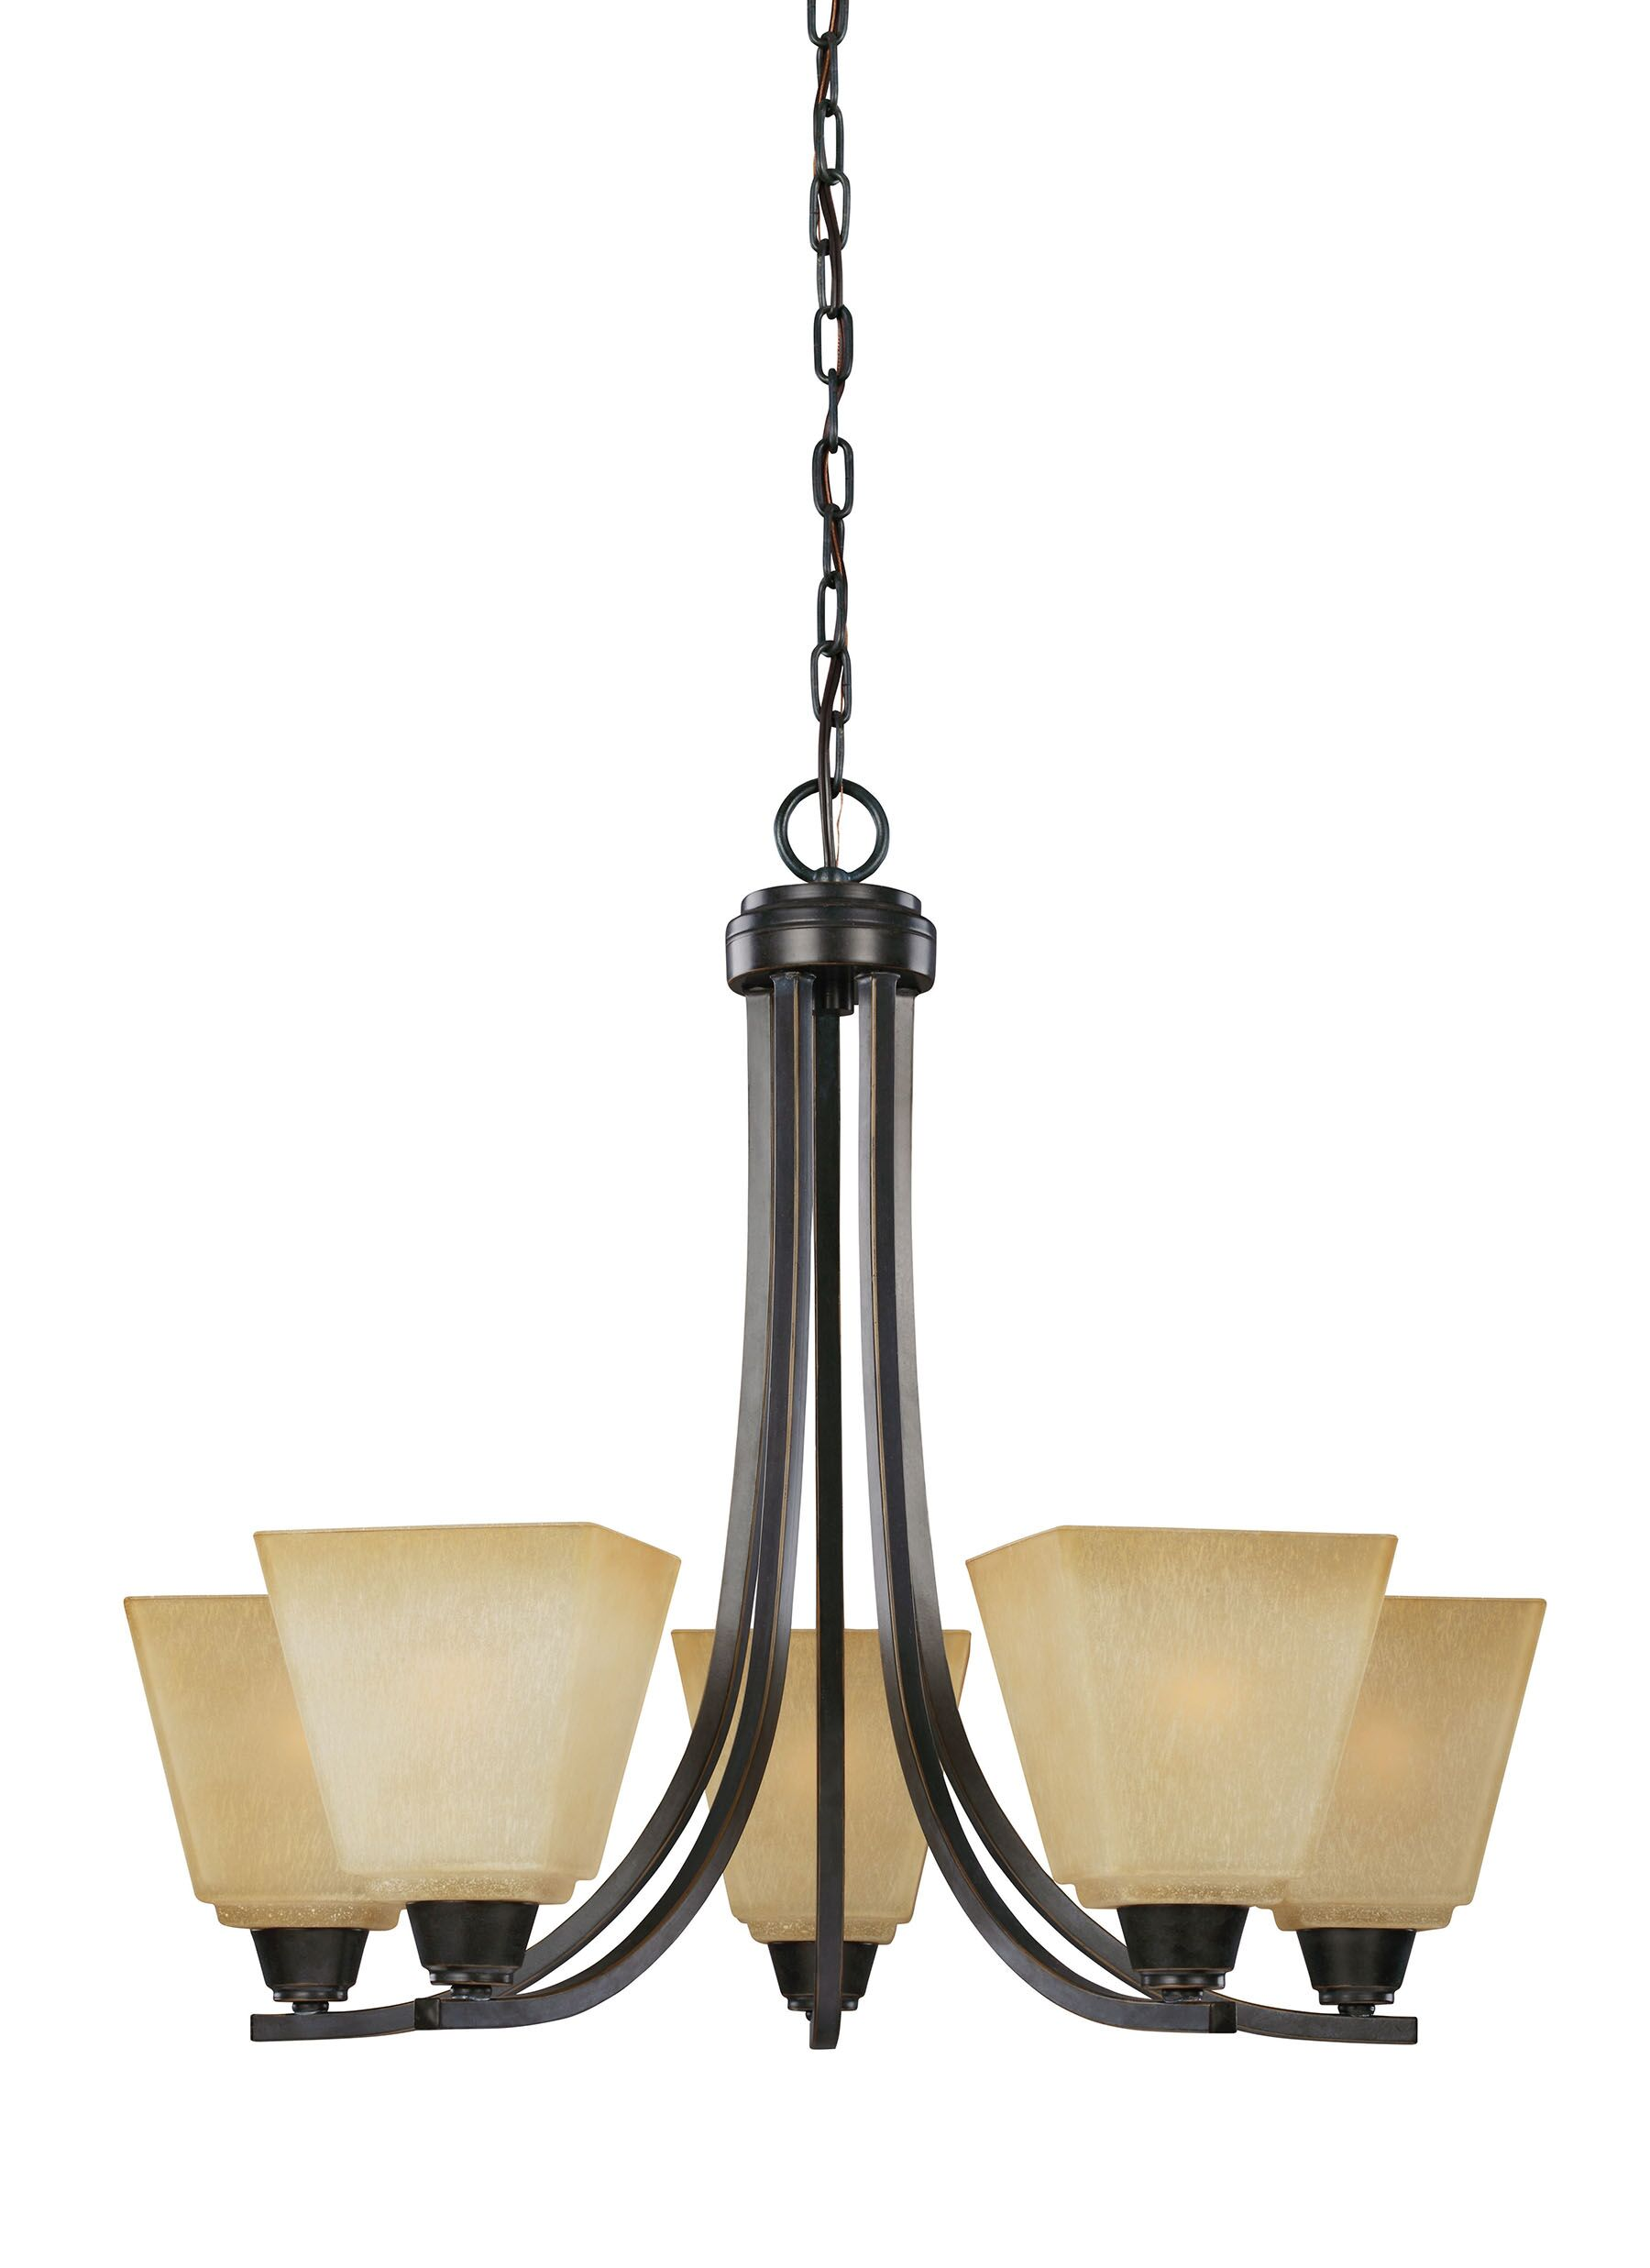 Filson 5-Light Shaded Chandelier Finish: Brushed Nickel, Bulb Type: Incandescent, Shade Color: White